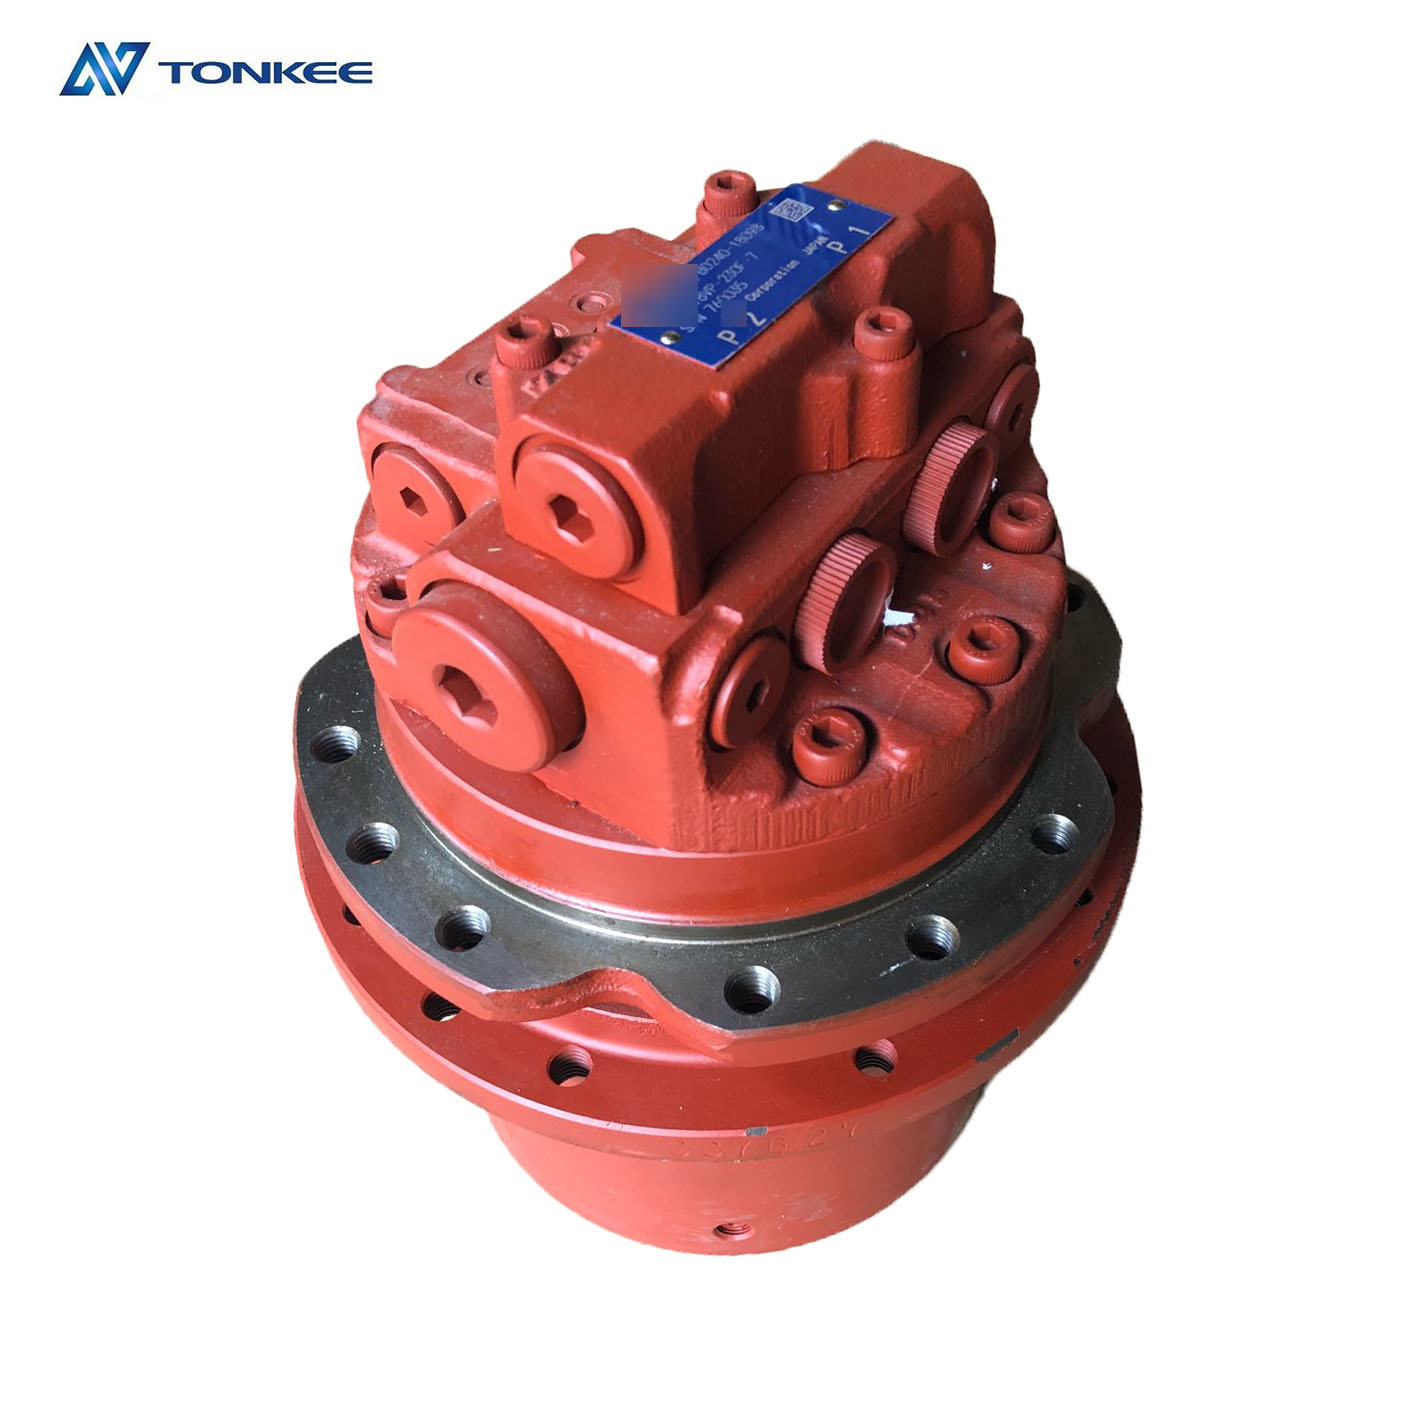 SK27 SK27SR-3 final drive KYB MAG18VP MAG-18VP-230F travel motor Assy for KOBELCO excavator